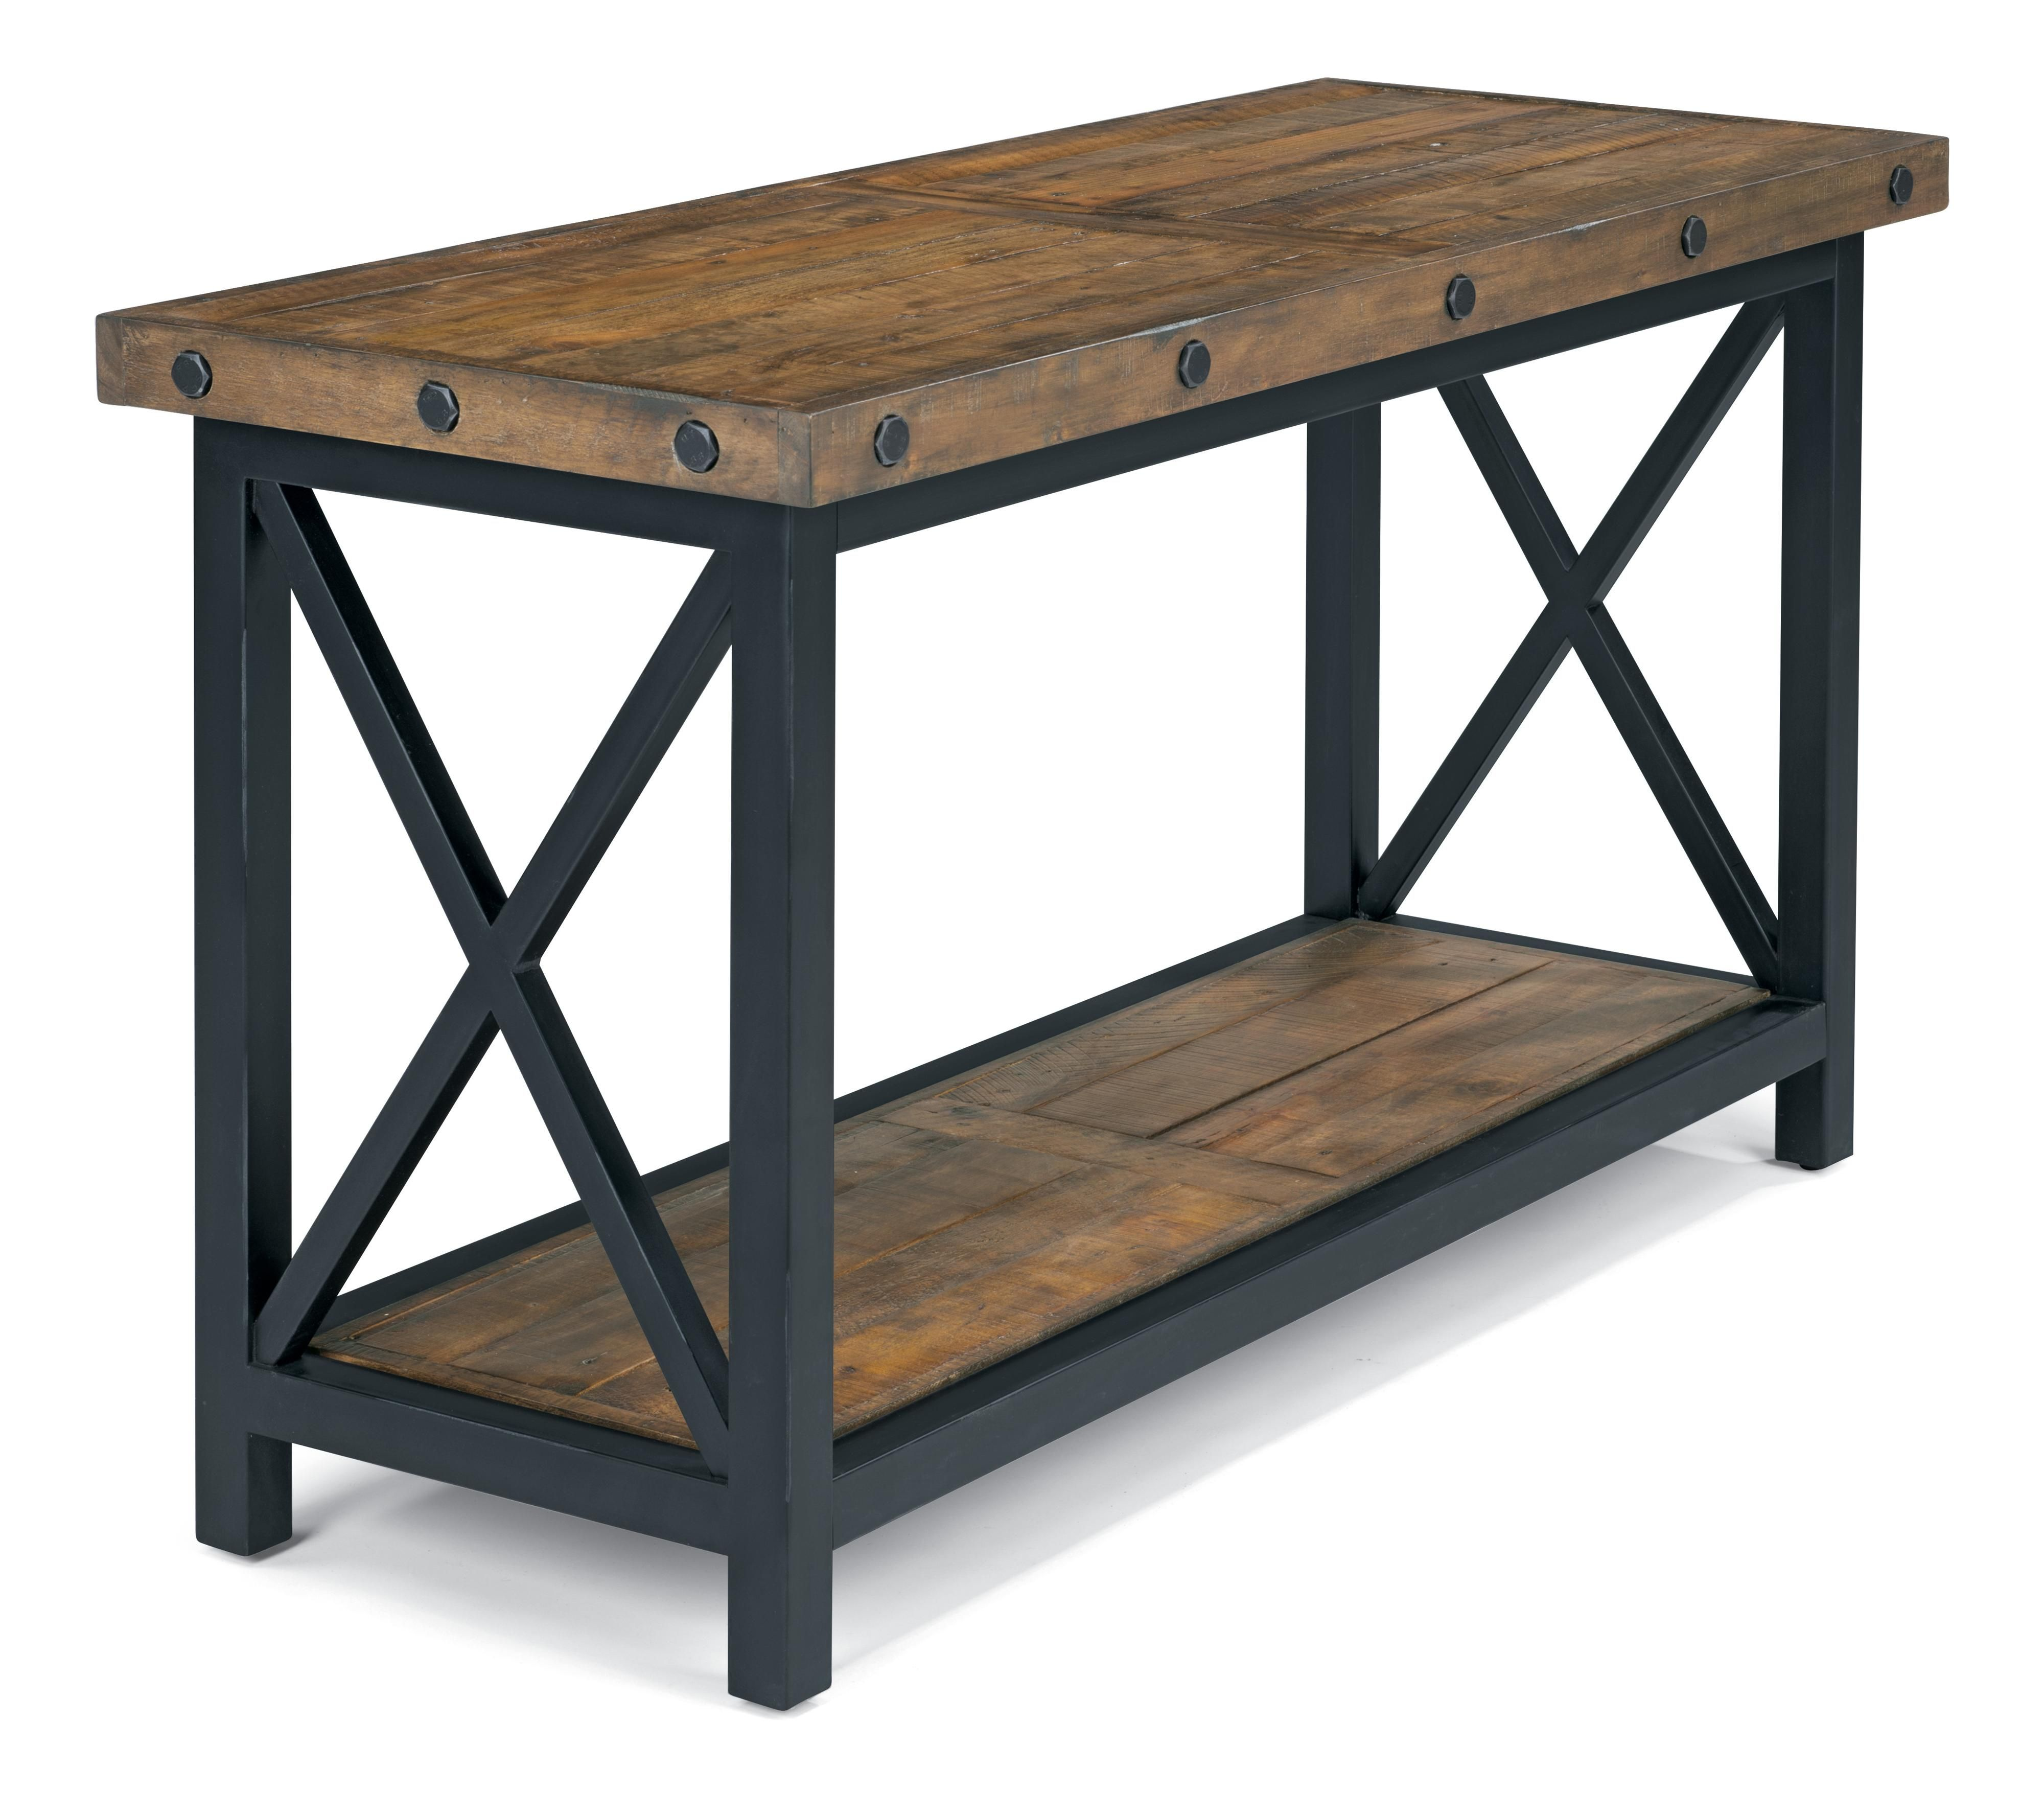 Carpenter sofa table by flexsteel console table pinterest carpenter sofa table by flexsteel geotapseo Images